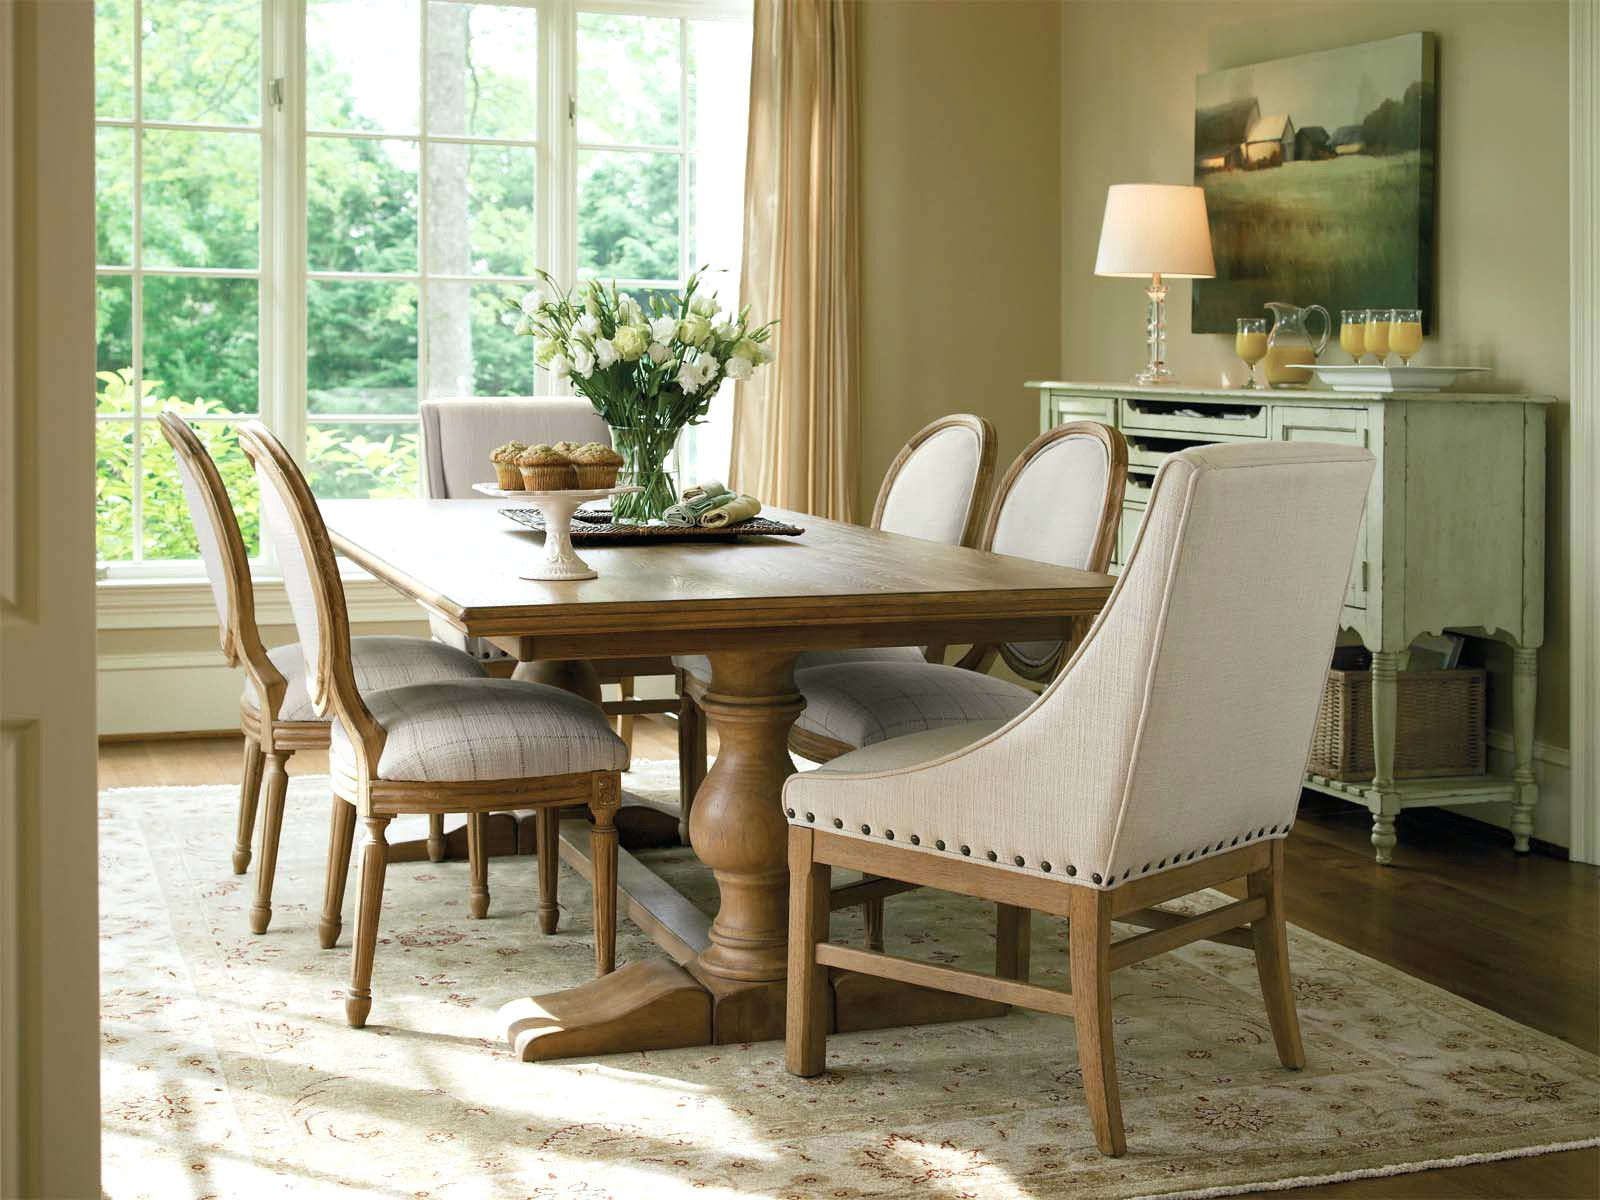 Room · French Country Dining Table With Bench Country Style ...